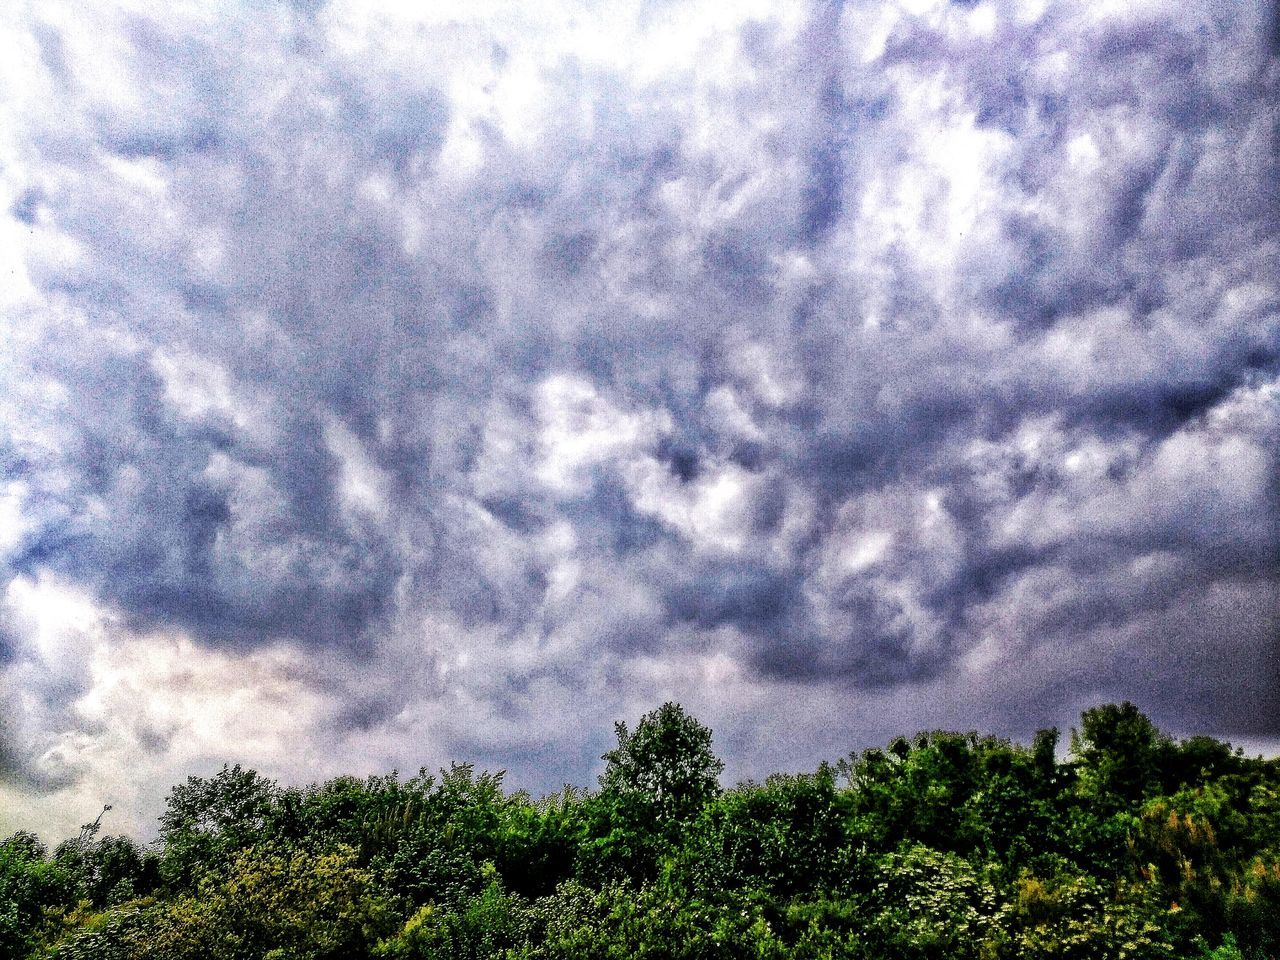 tree, sky, nature, low angle view, cloud - sky, beauty in nature, day, no people, scenics, tranquility, outdoors, tranquil scene, growth, storm cloud